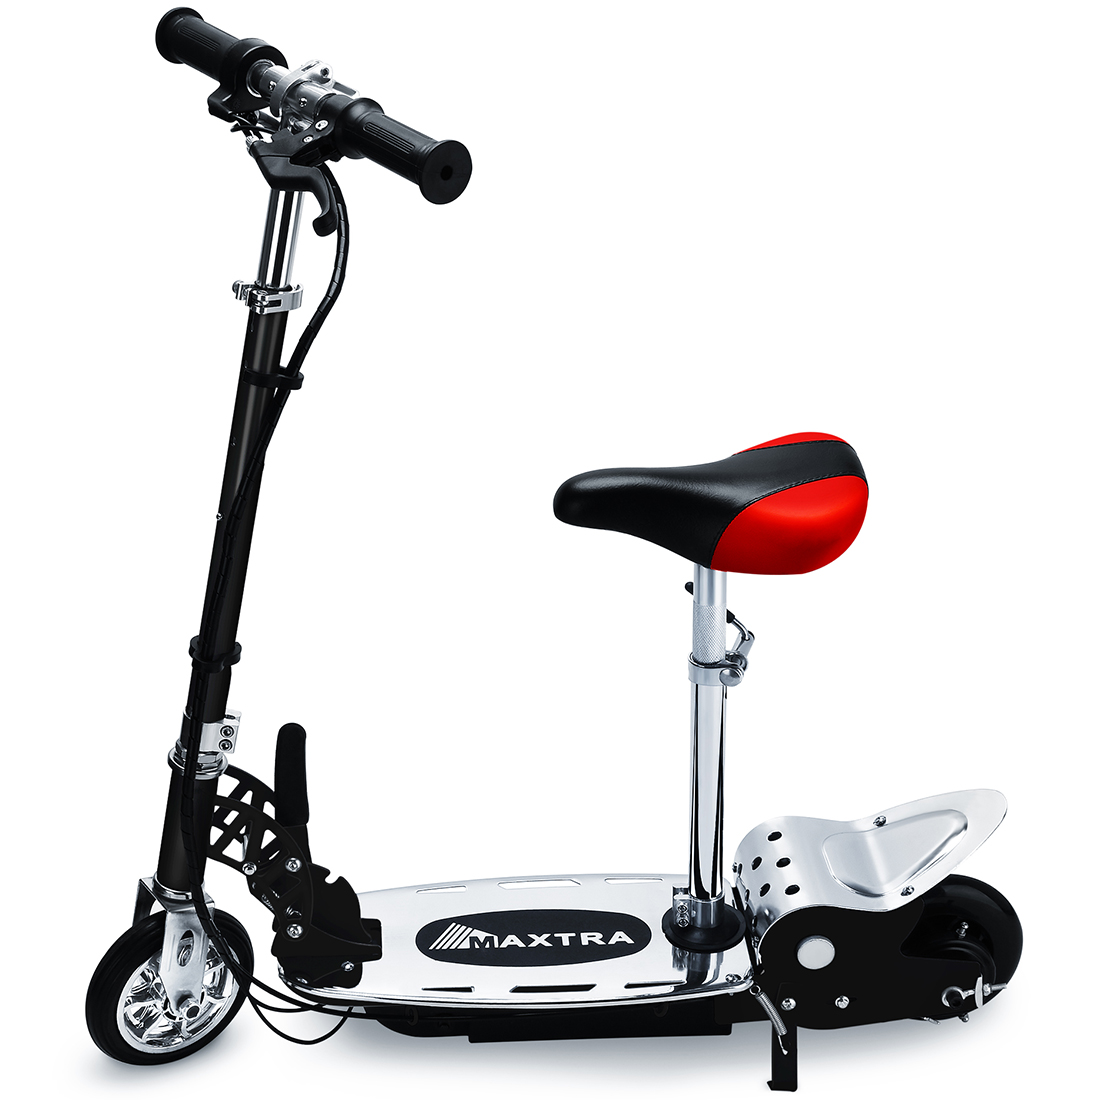 Maxtra Astm Approved Electric Scooter 177lbs Max Weight Capacity